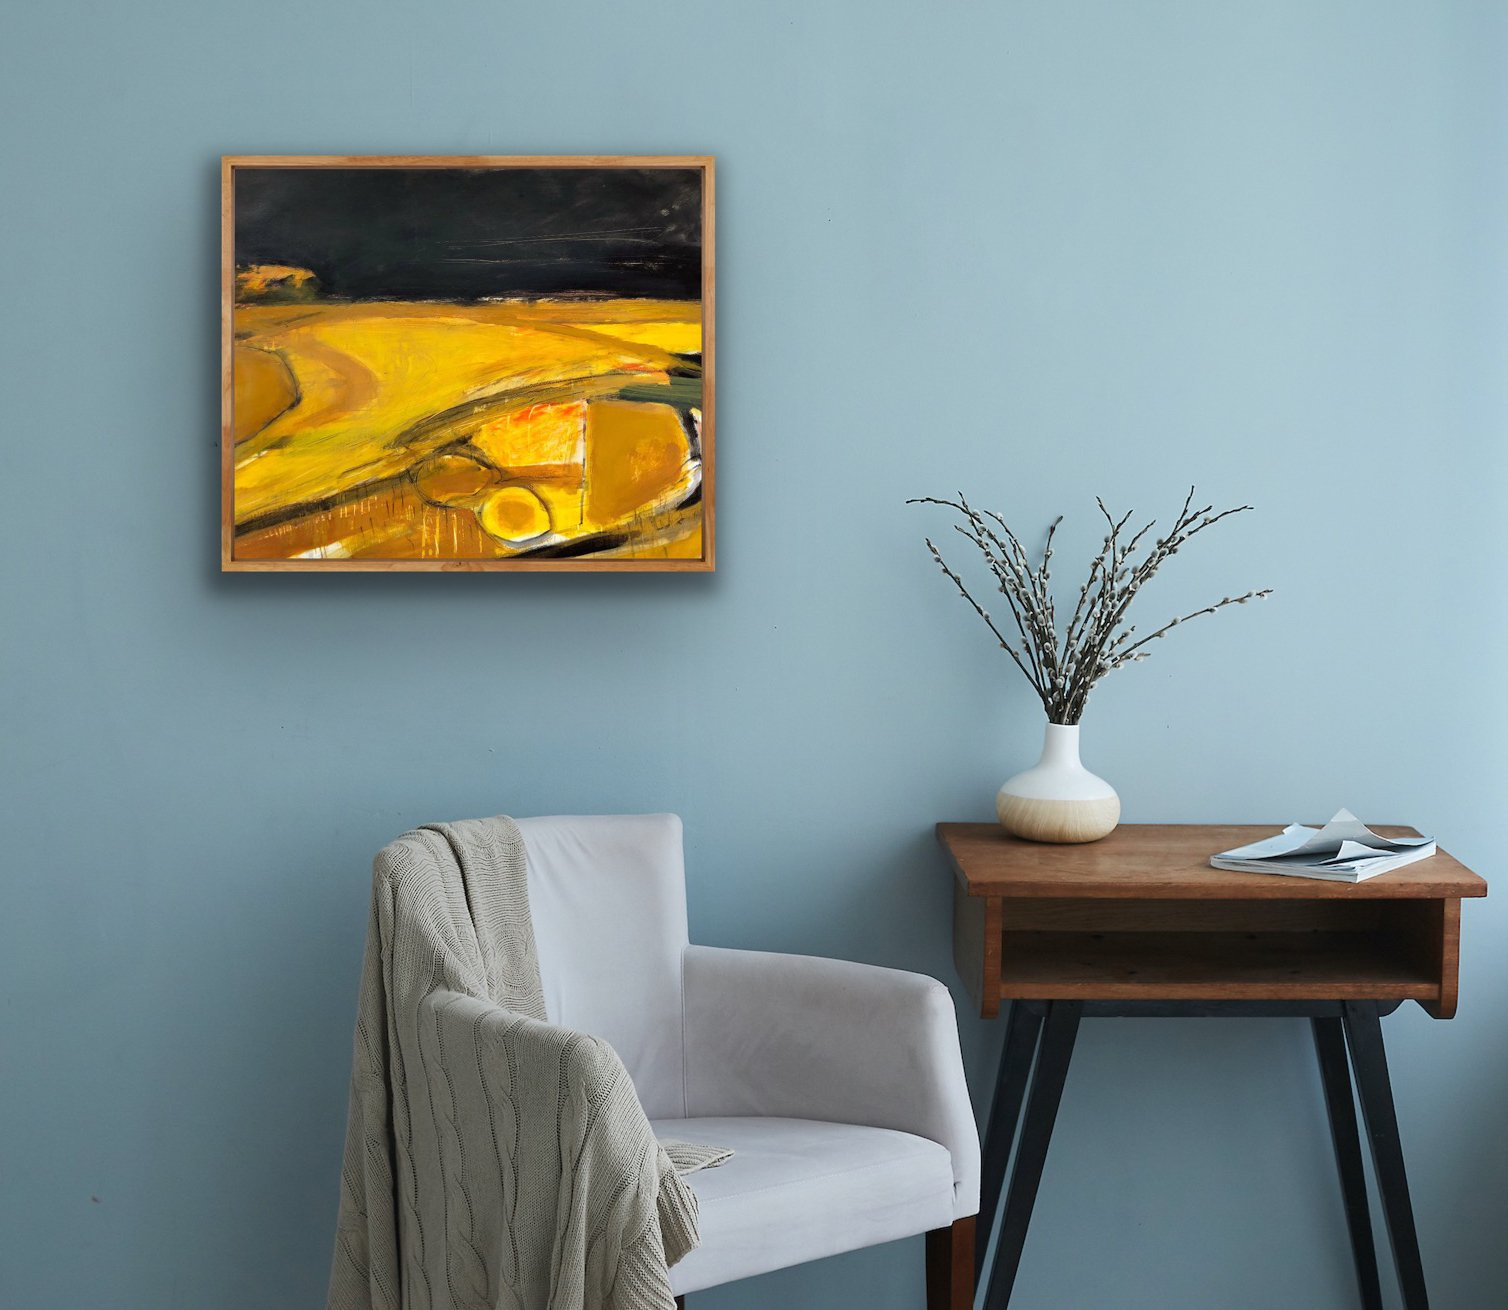 An abstract landscape by contemporary, woman artist Jane Hodgson, shown in situ